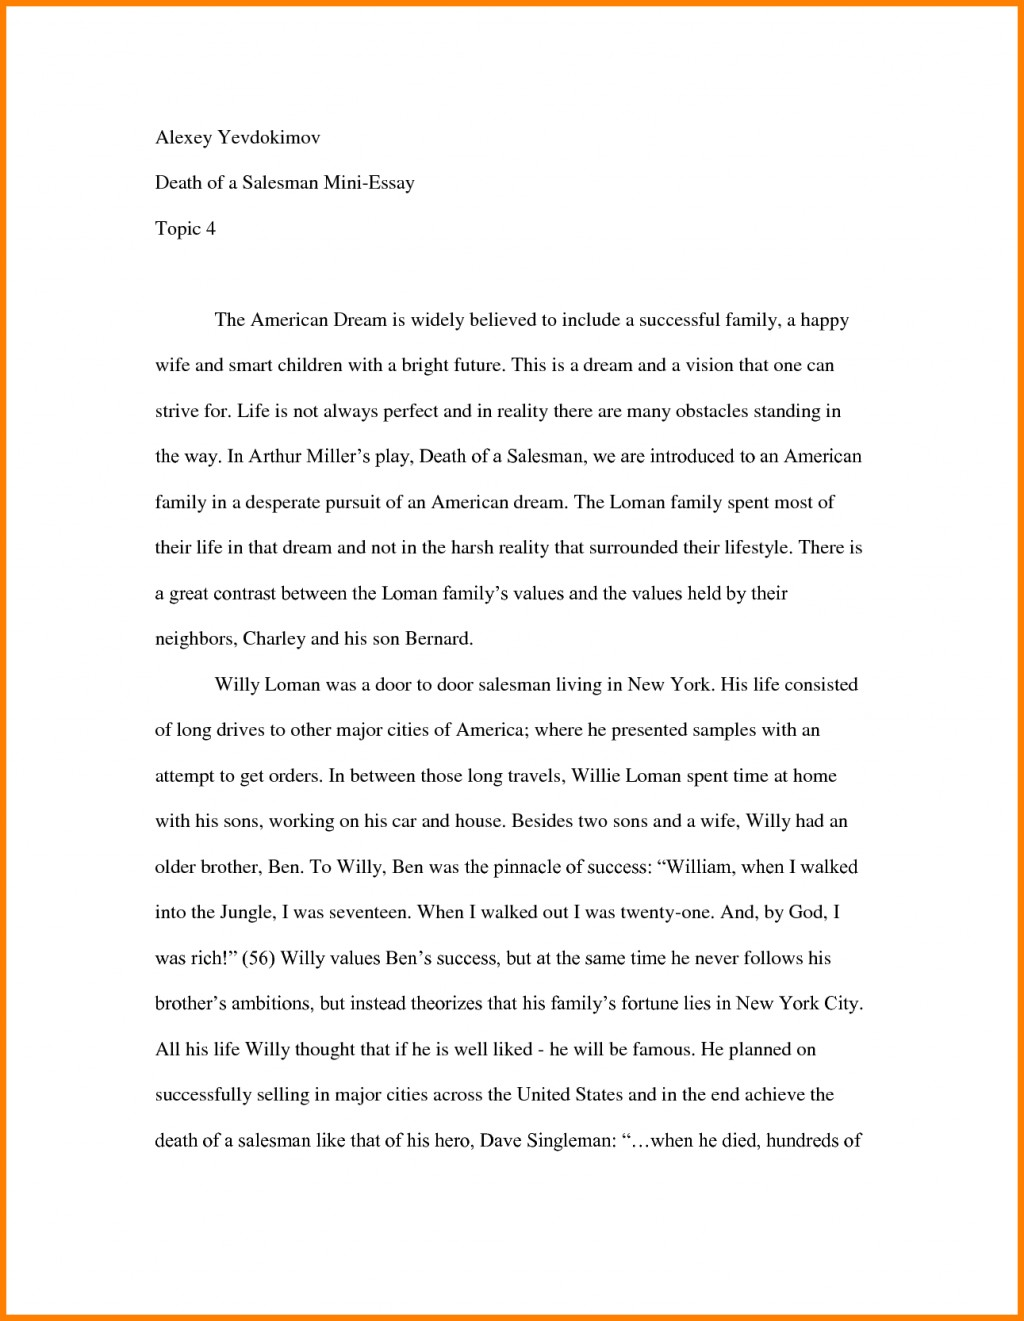 002 How To Startf An Essay About Yourself Example Breathtaking Start Of Argumentative For Scholarship Analysis On A Book Large